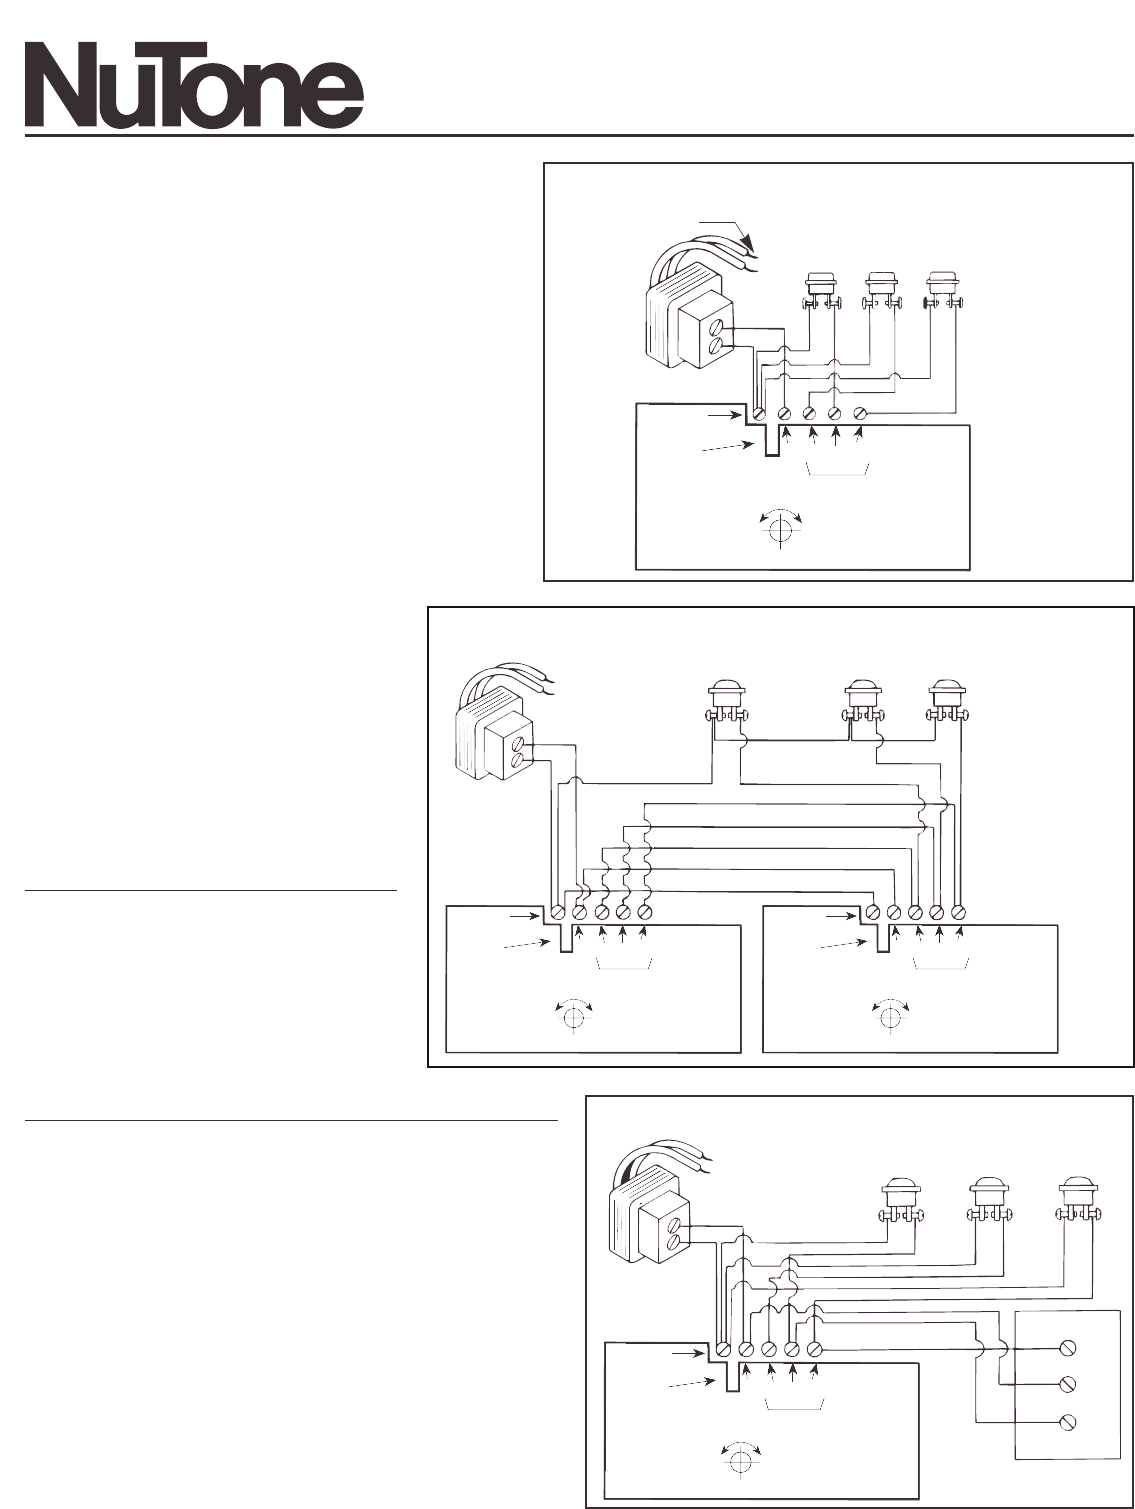 ace9333b 957d 46fc b4ce 11b5f4c43a17 bg1 door chime wiring diagram nutone door bell wiring diagrams \u2022 free Doorbell Transformer Wiring Diagram at soozxer.org